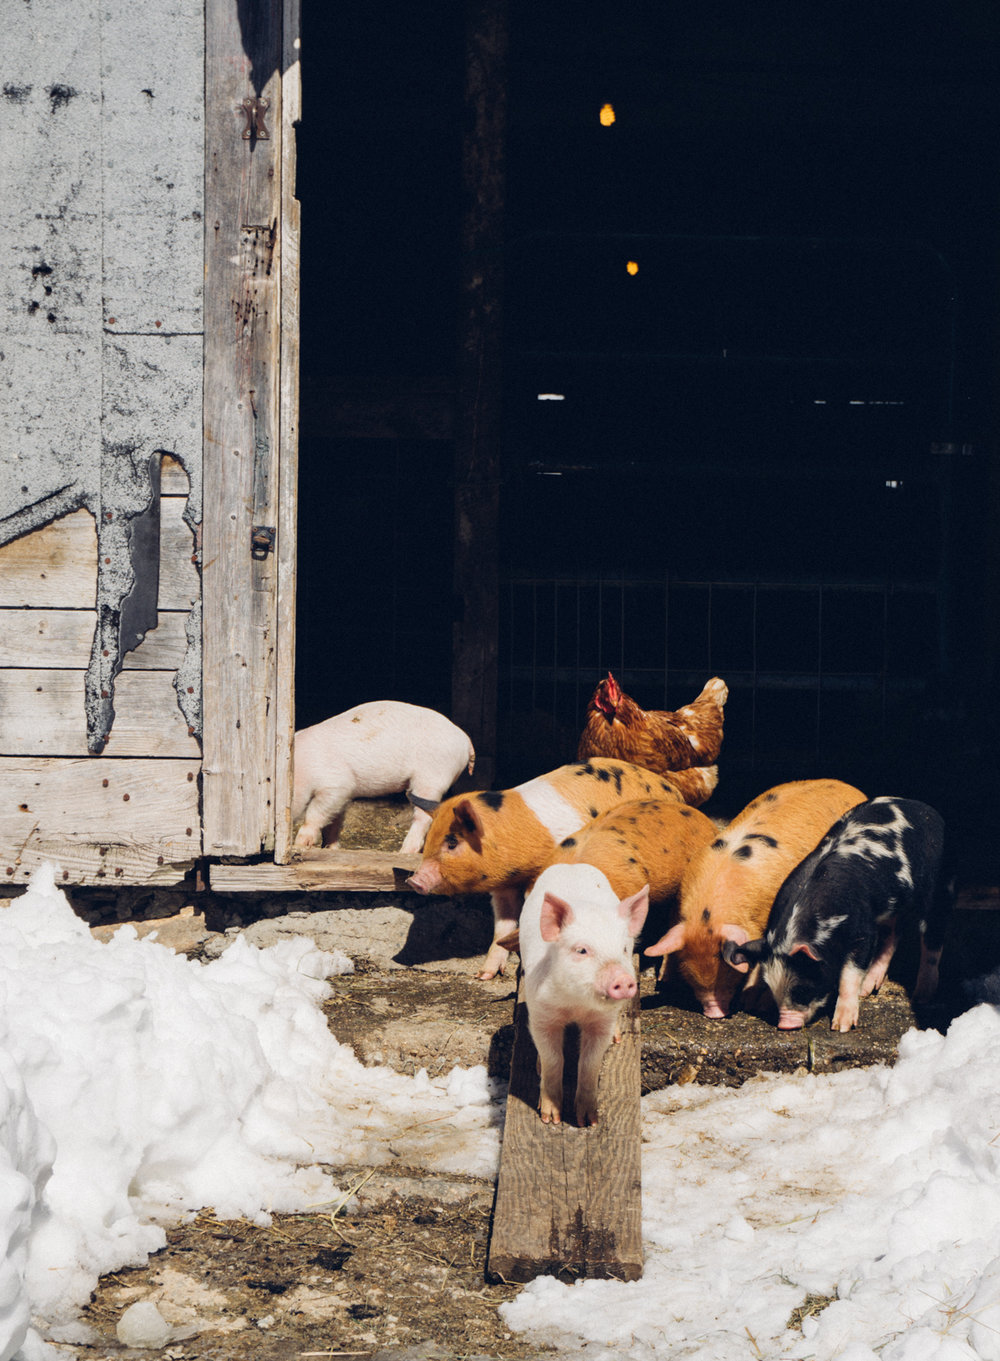 New piglets on the farm find their way out to the snowy barn yard.